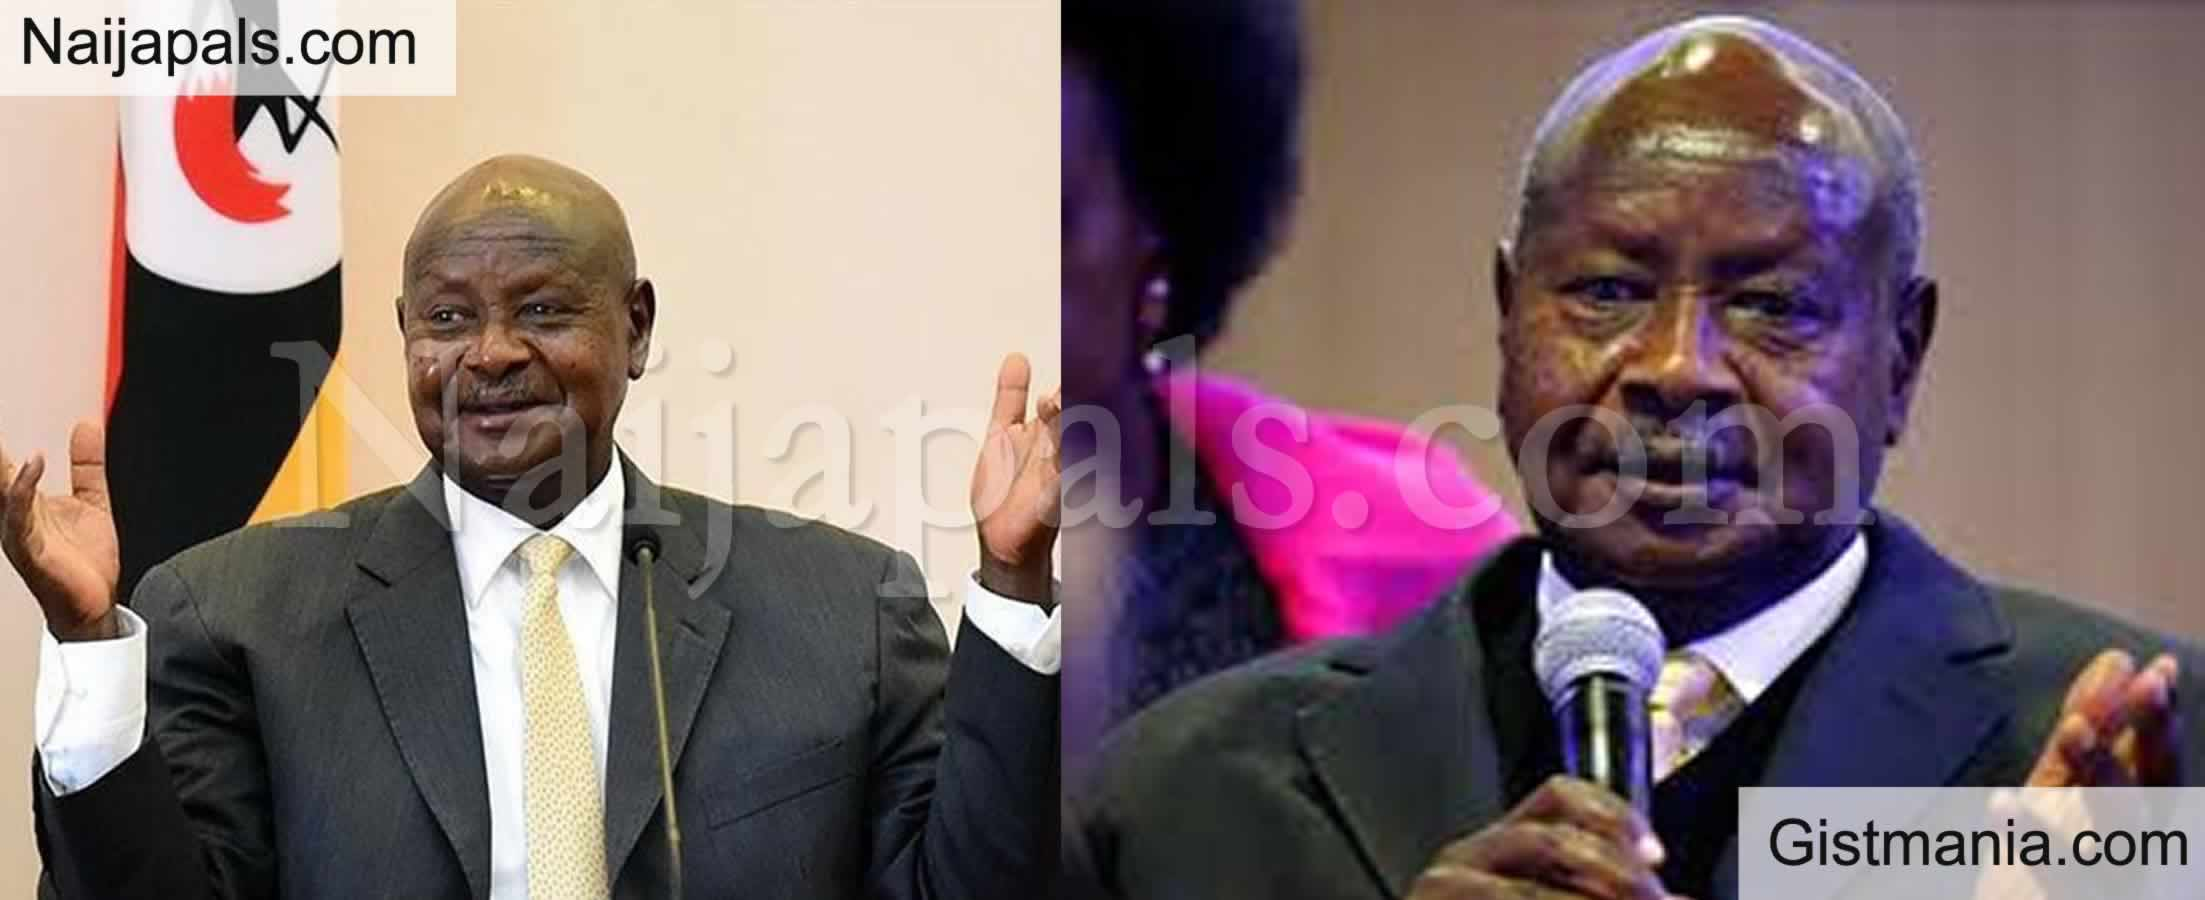 Strong Warning From Ugandan President Against Oral Sex, Says The Mouth Is For Eating (Video)